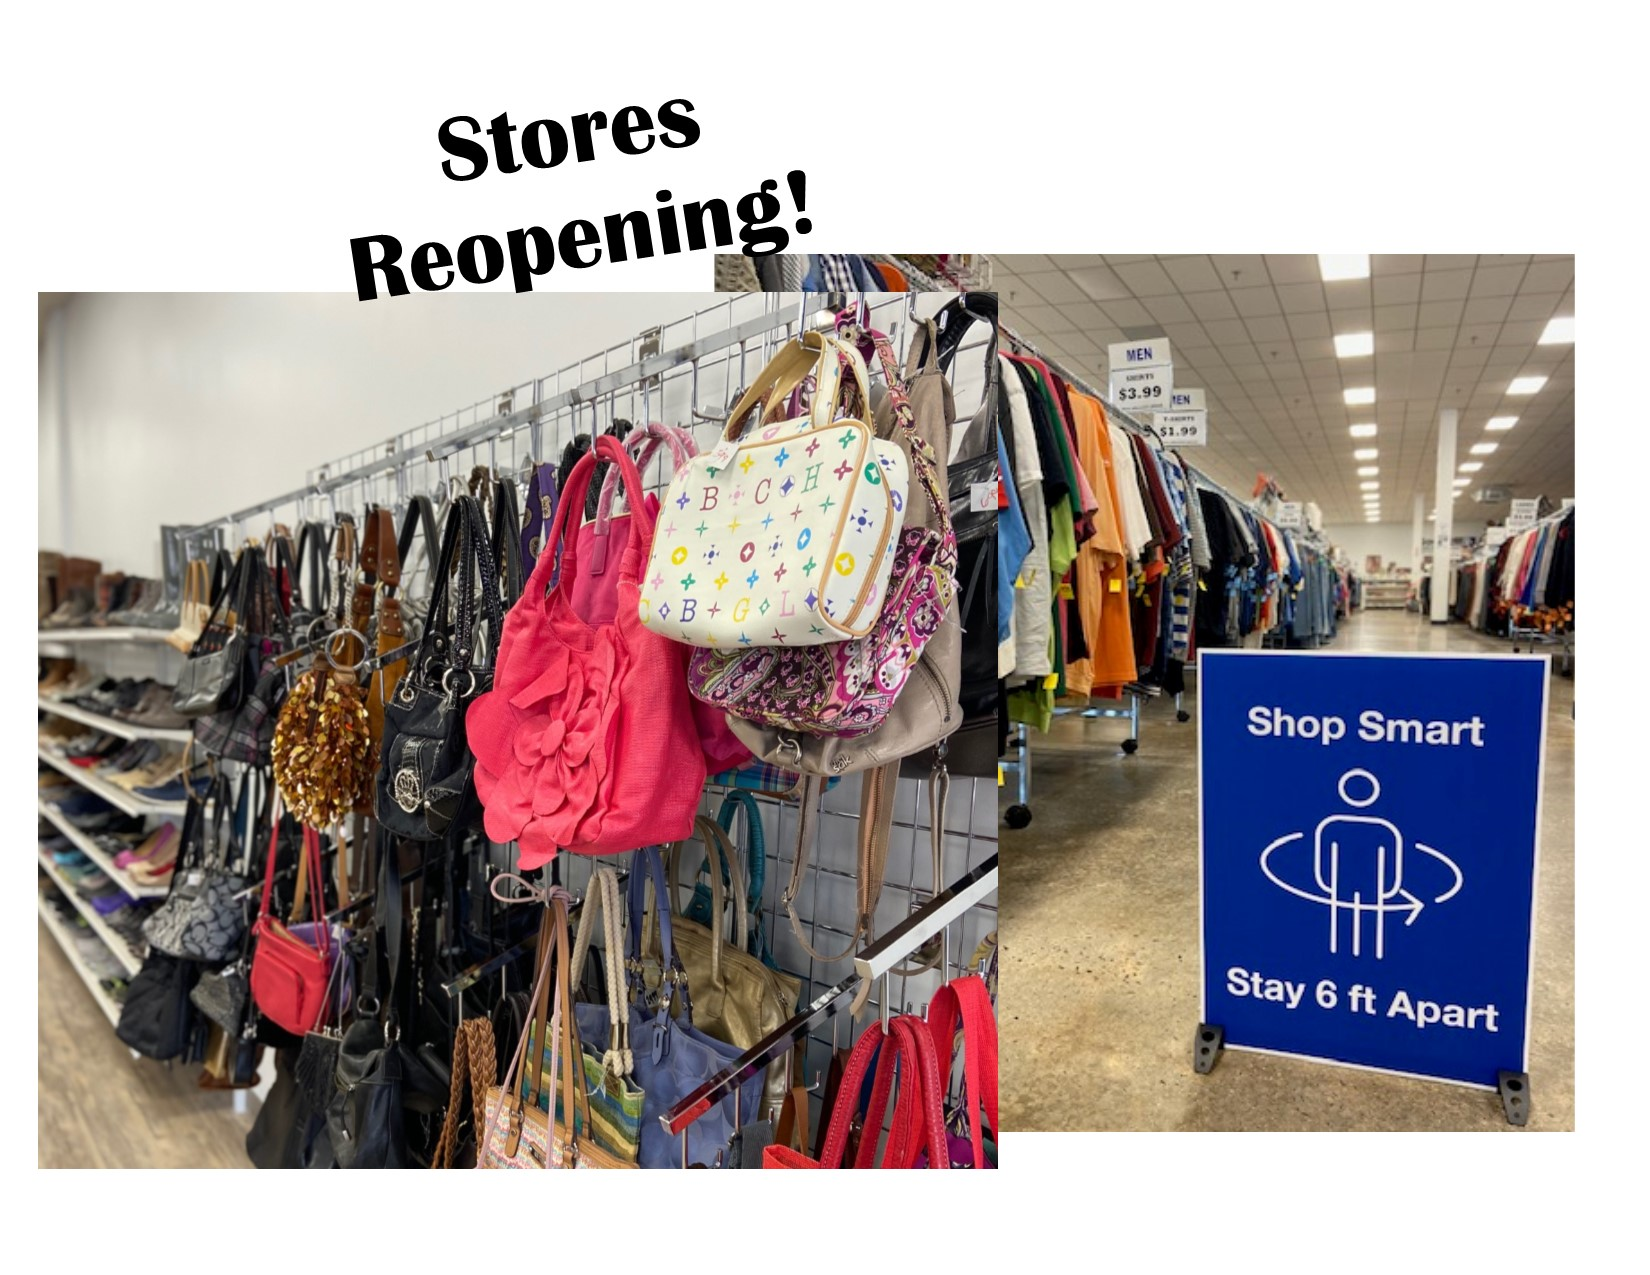 Horizon Goodwill Stores Reopening